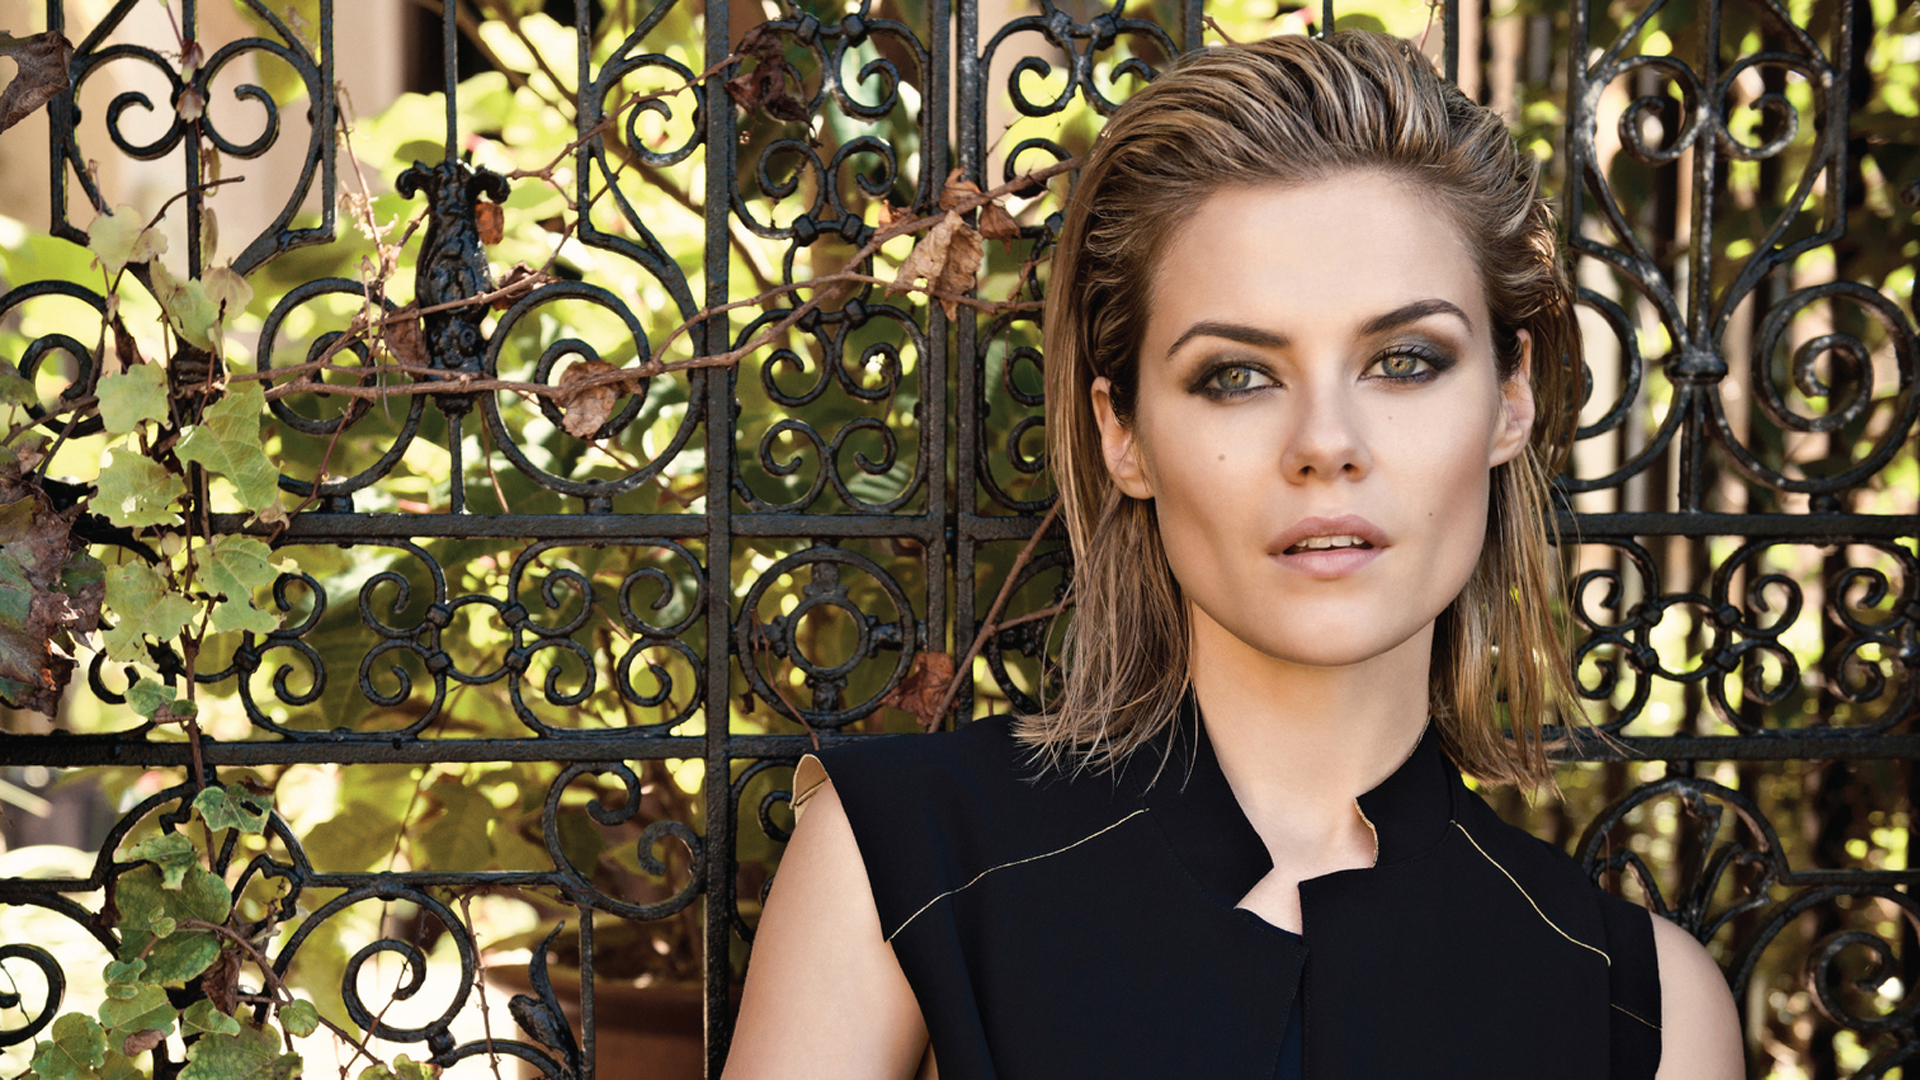 rachael taylor makeup hd wallpaper 56474